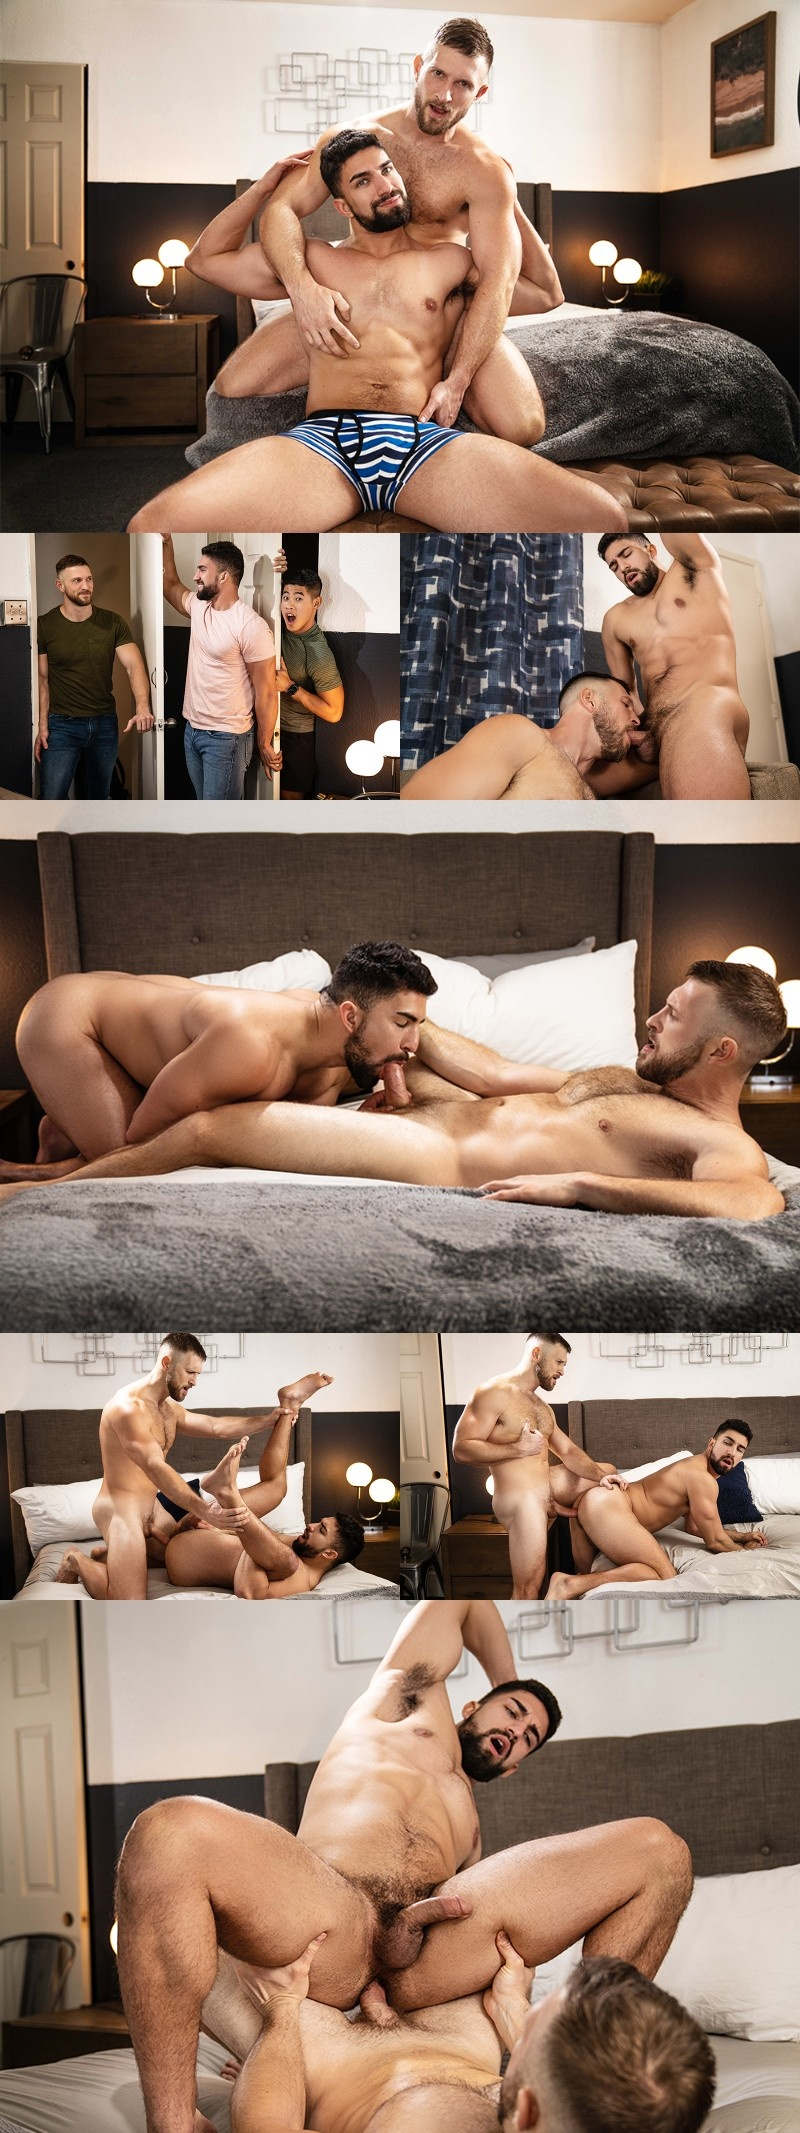 Nasty Roommate Steals His Buddy's Hook-Up